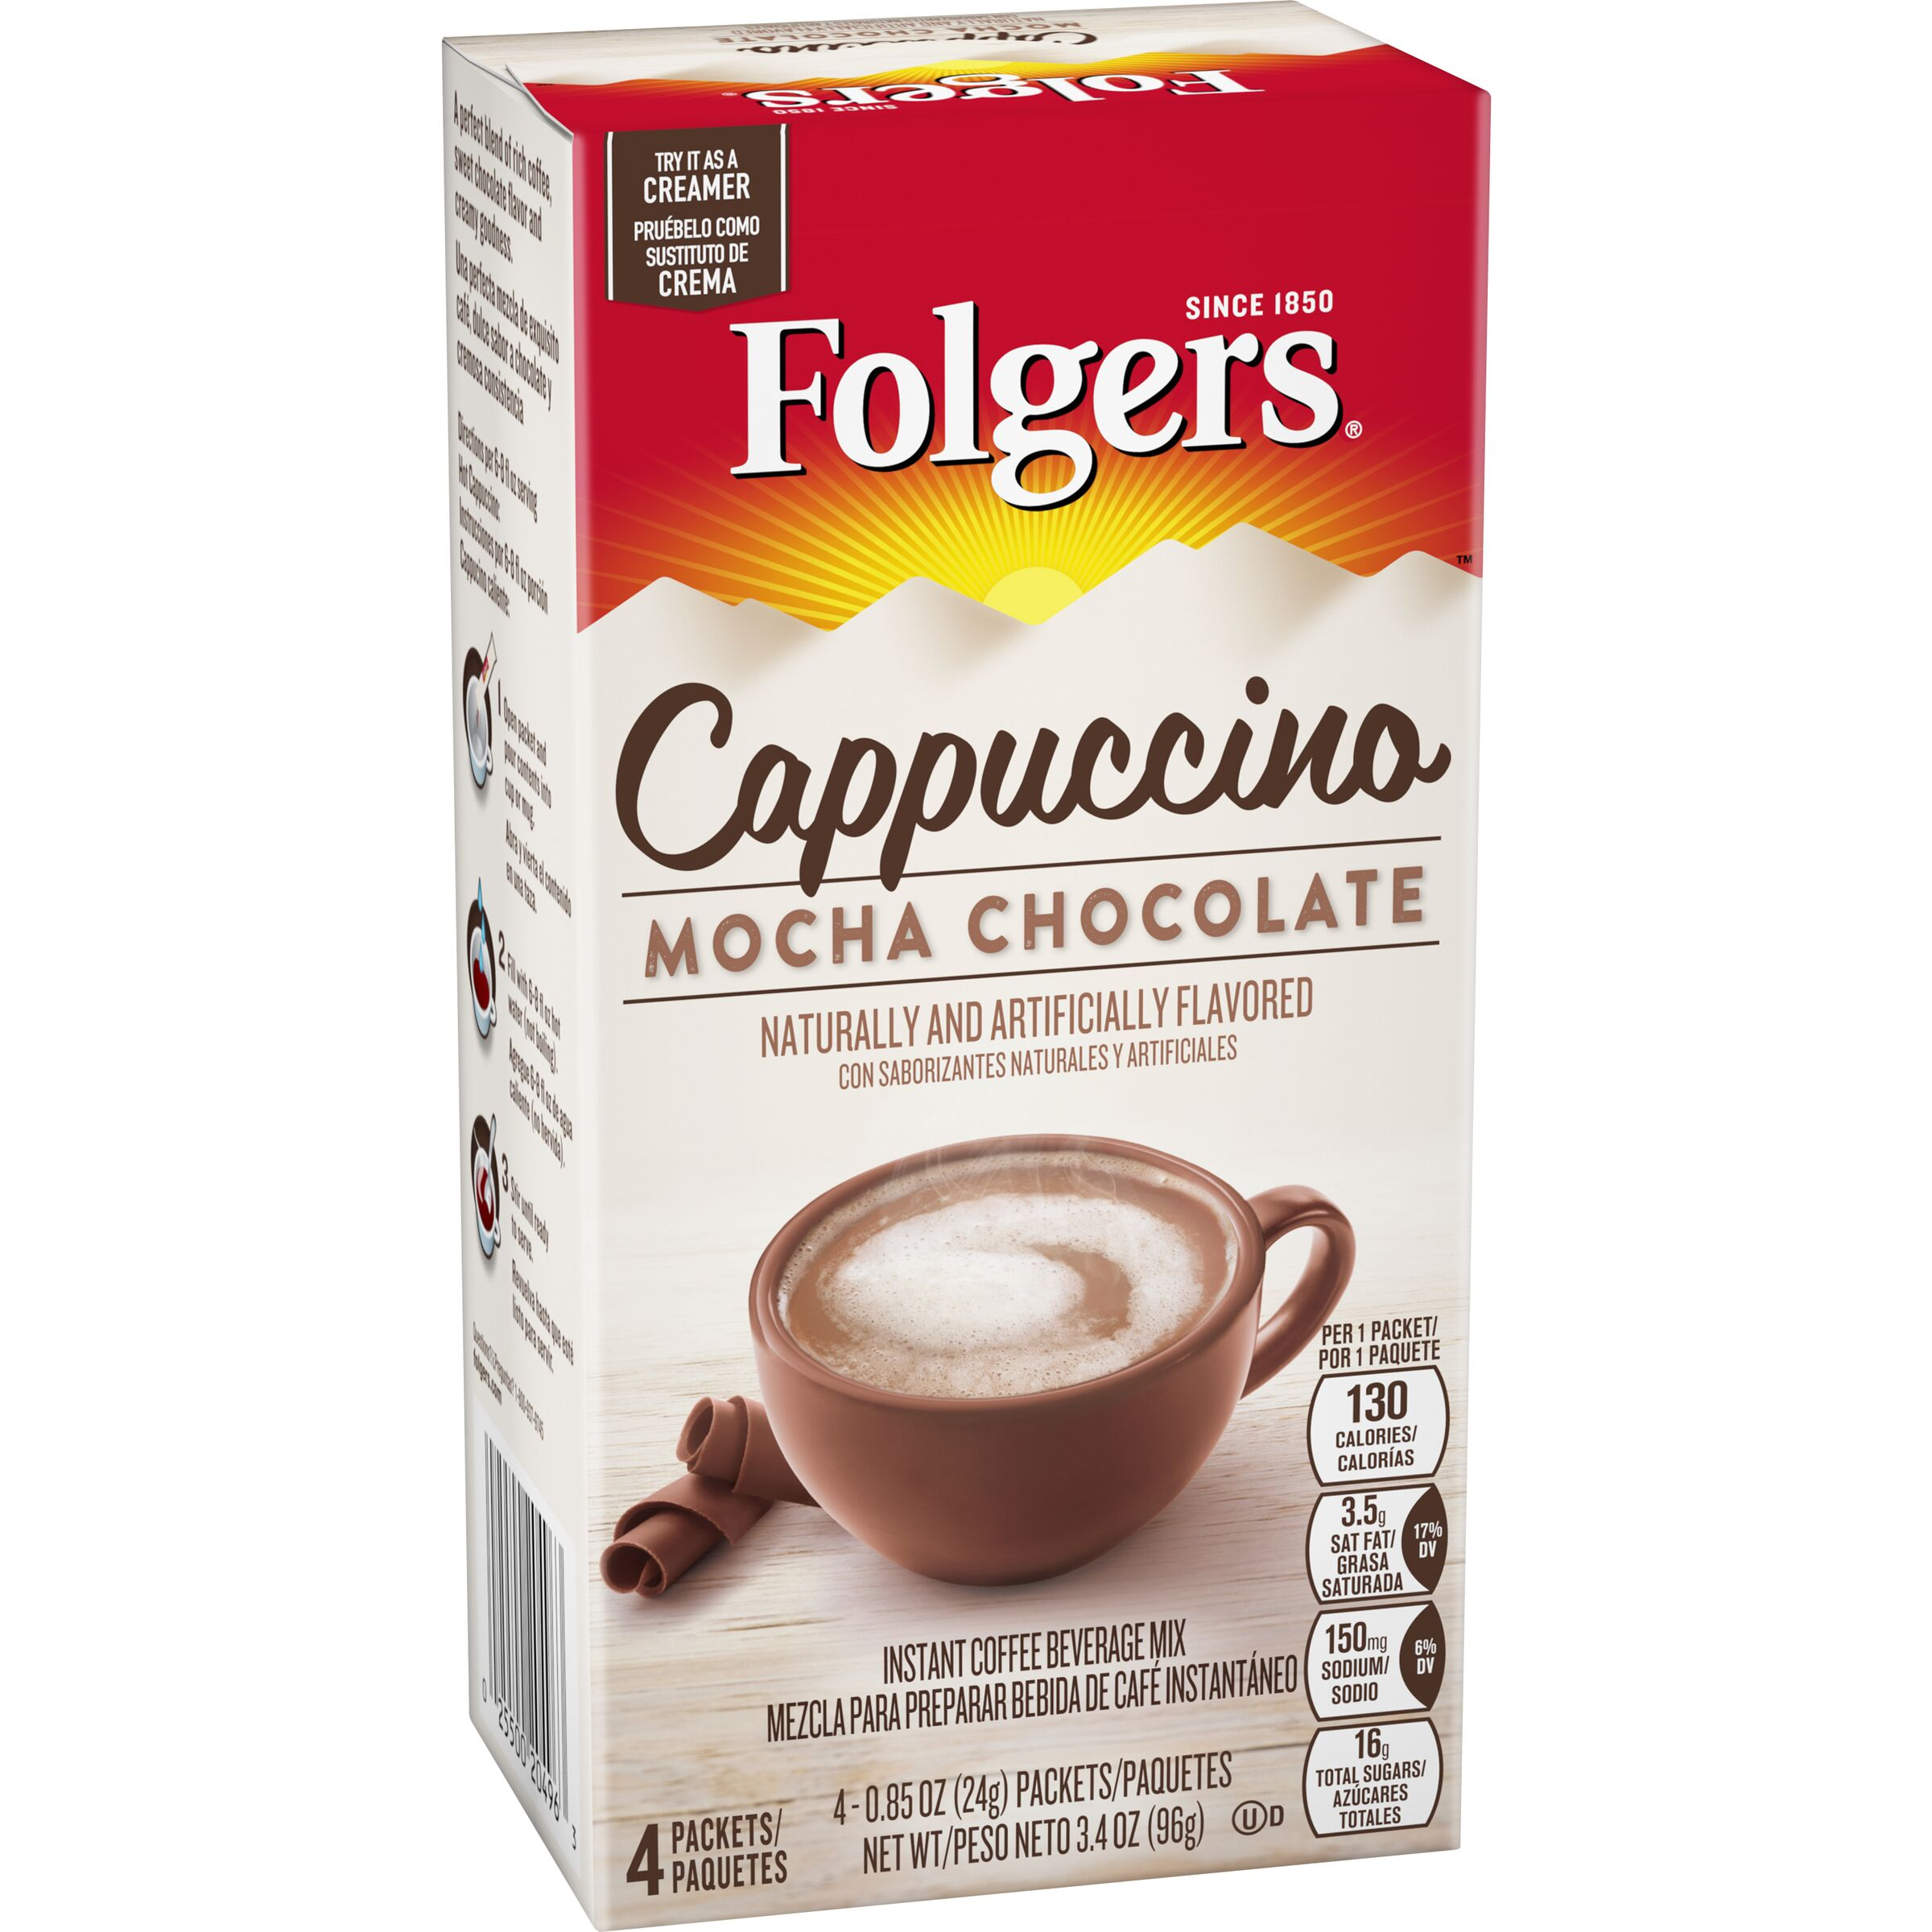 Folgers Cappuccinos Mocha Chocolate Flavored Cappuccino Mix Packets